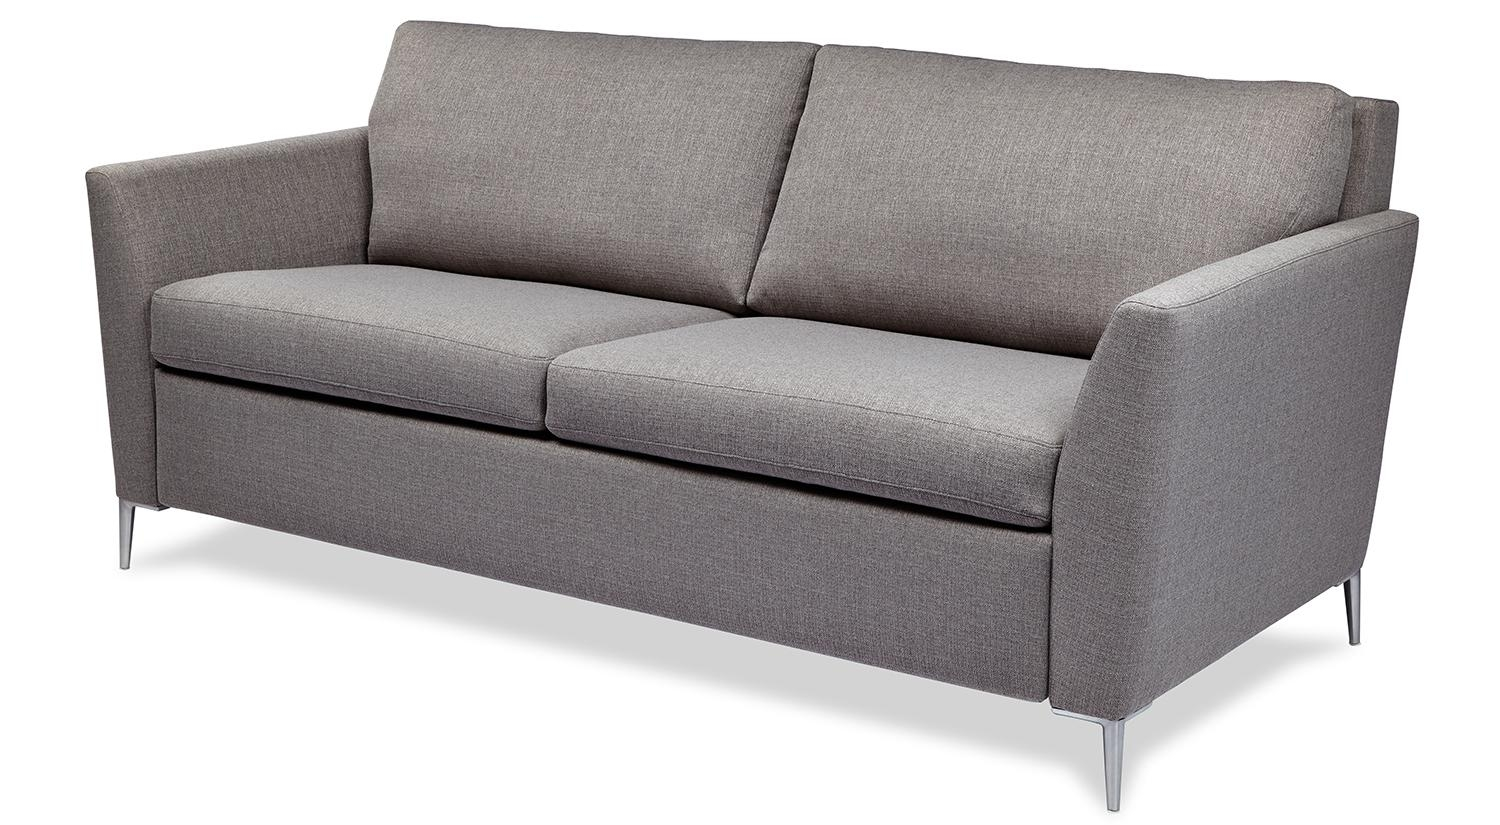 Circle Furniture – Noah Comfort Sleeper | Comfortable Sleeper Intended For Comfort Sleeper Sofas (View 12 of 22)